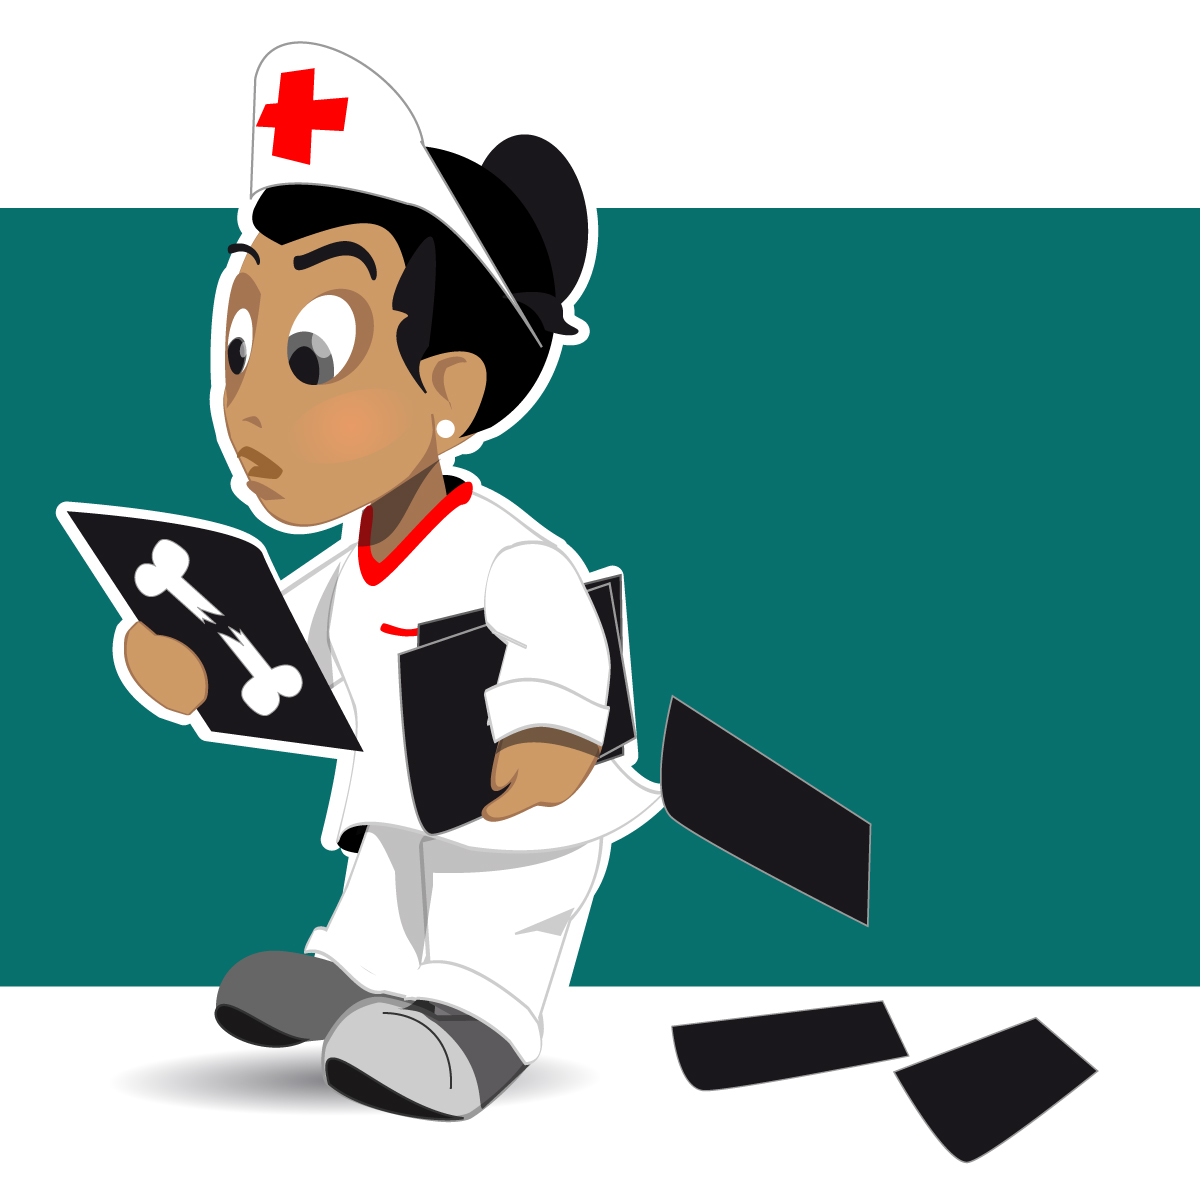 nurse-illustration-96-01